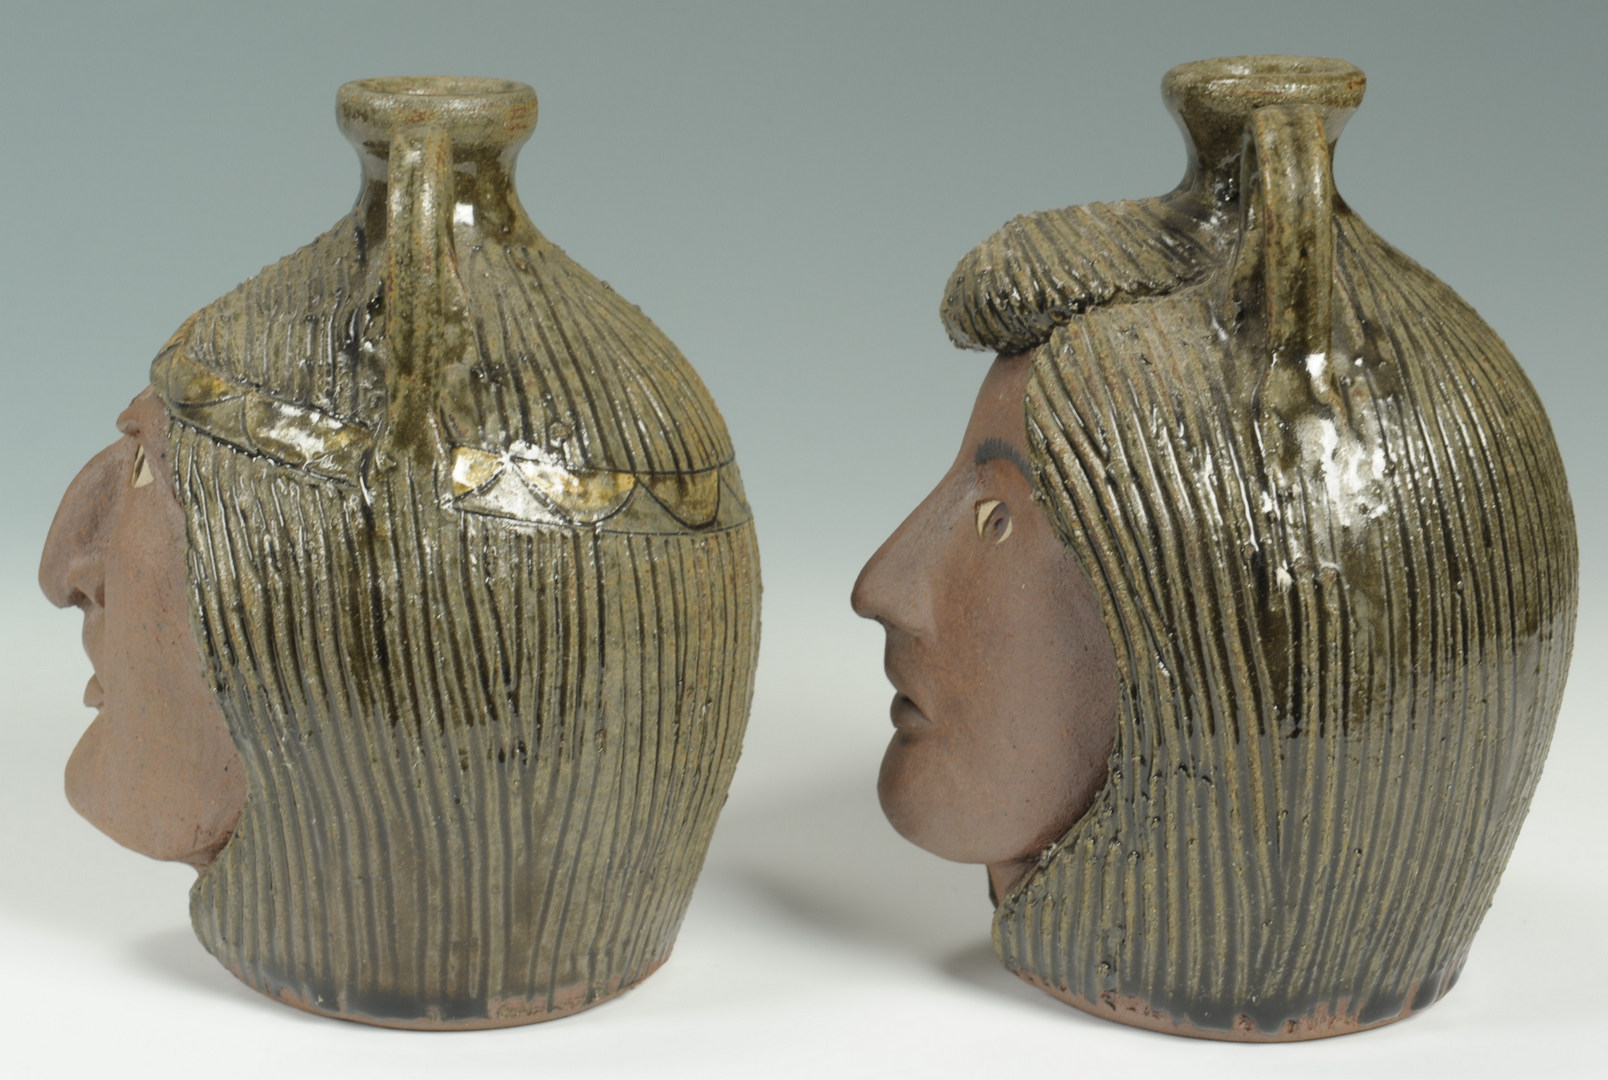 Lot 306: Pr. of Miniature Crocker Indian Face Jugs